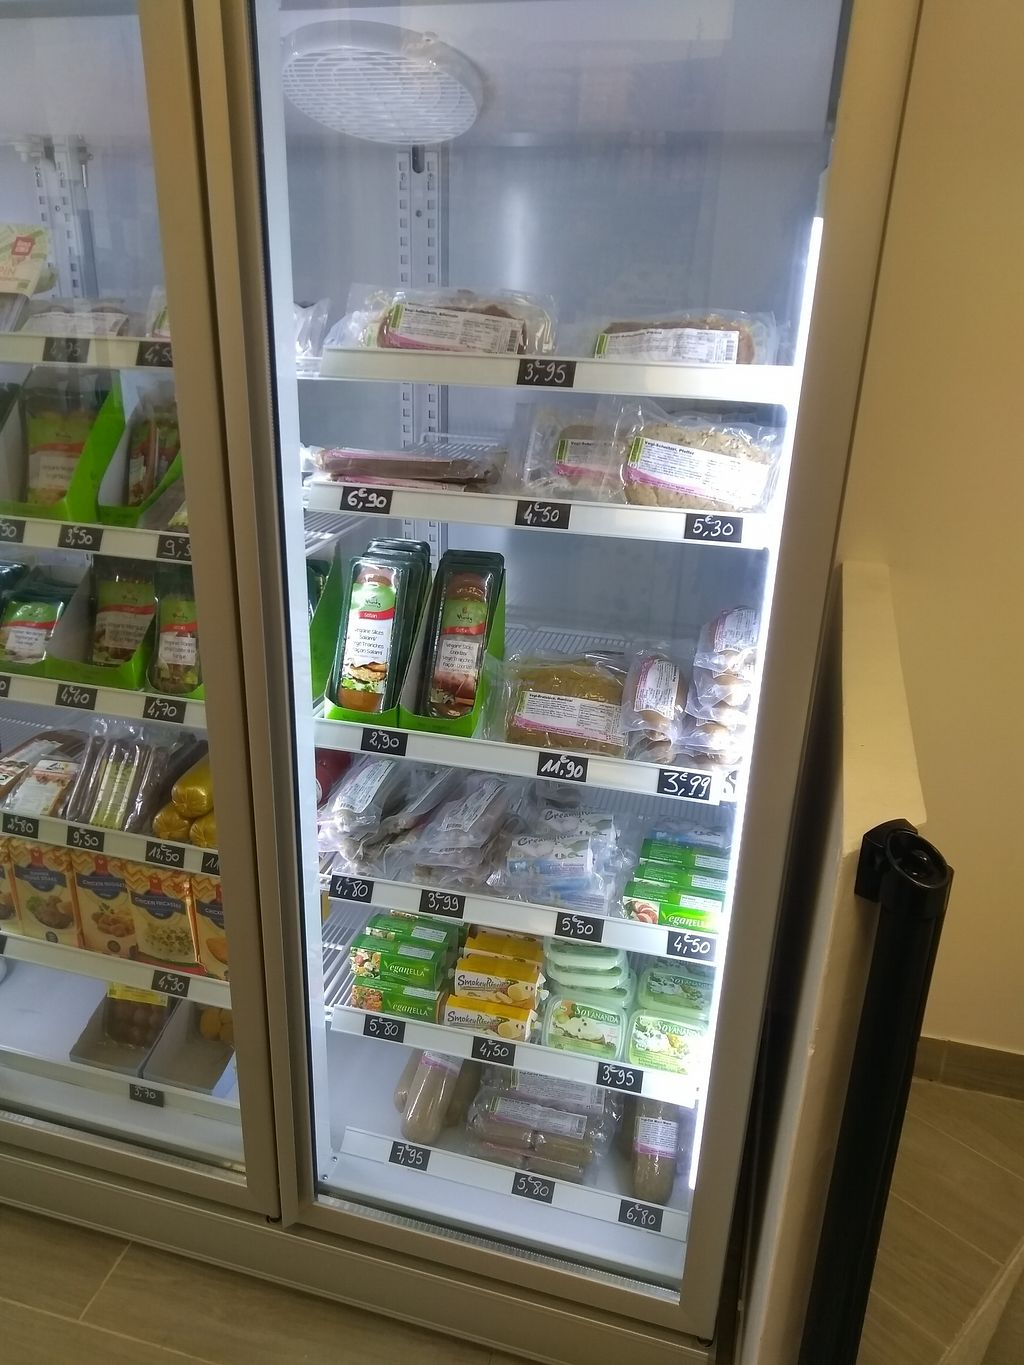 """Photo of 2VShop  by <a href=""""/members/profile/thenaturalfusions"""">thenaturalfusions</a> <br/>Vegan cheezes <br/> November 13, 2017  - <a href='/contact/abuse/image/104079/325116'>Report</a>"""